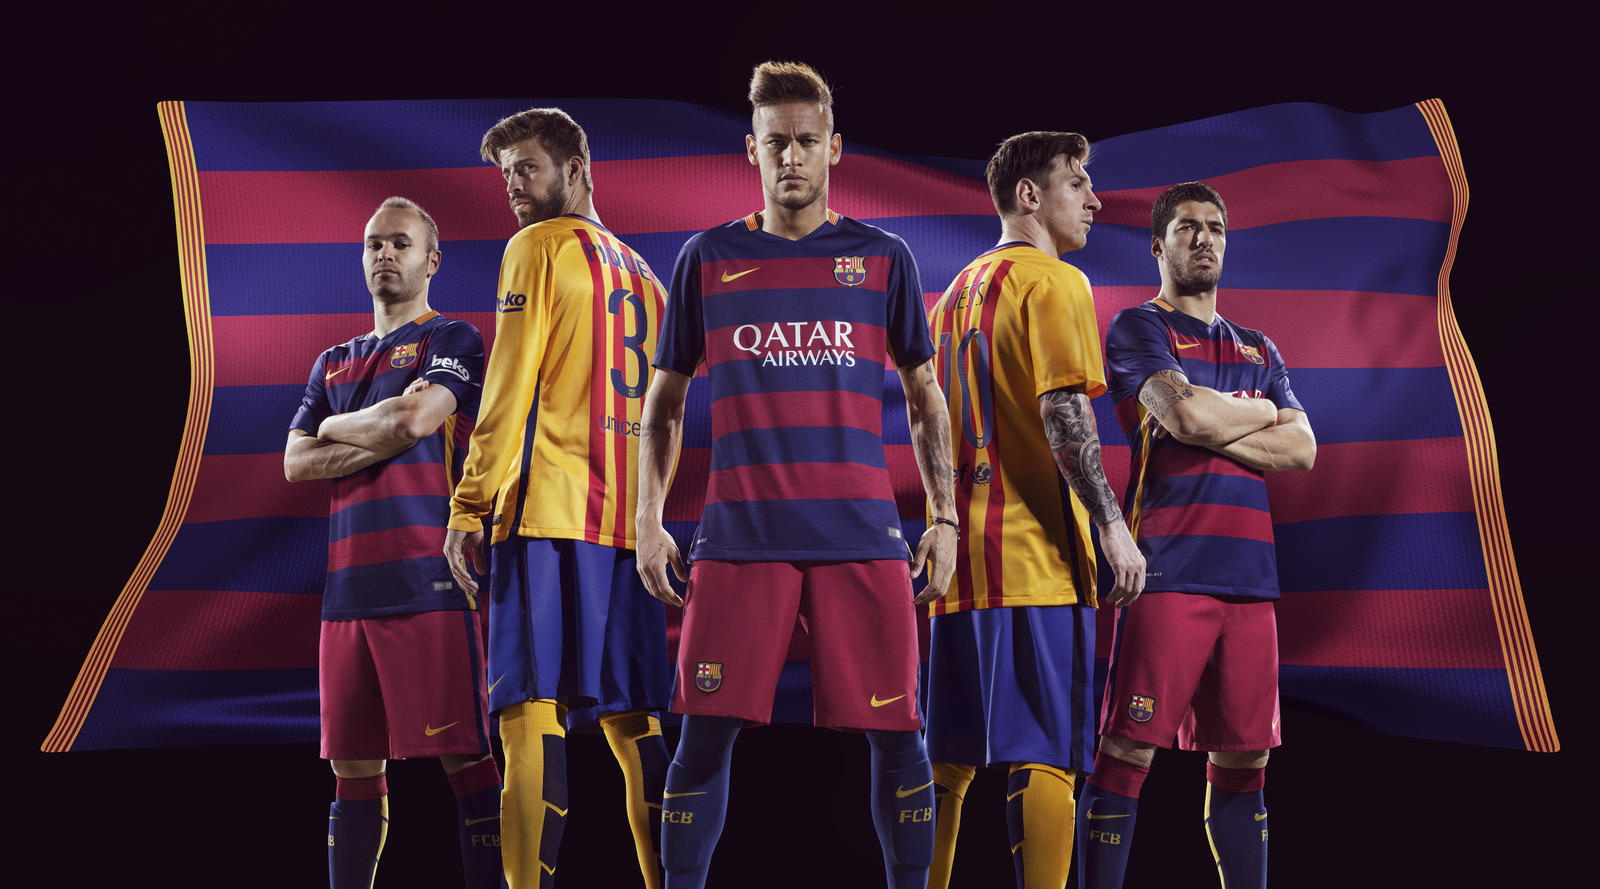 nouveaux maillots home away  15 16 FC Barcelone Nike